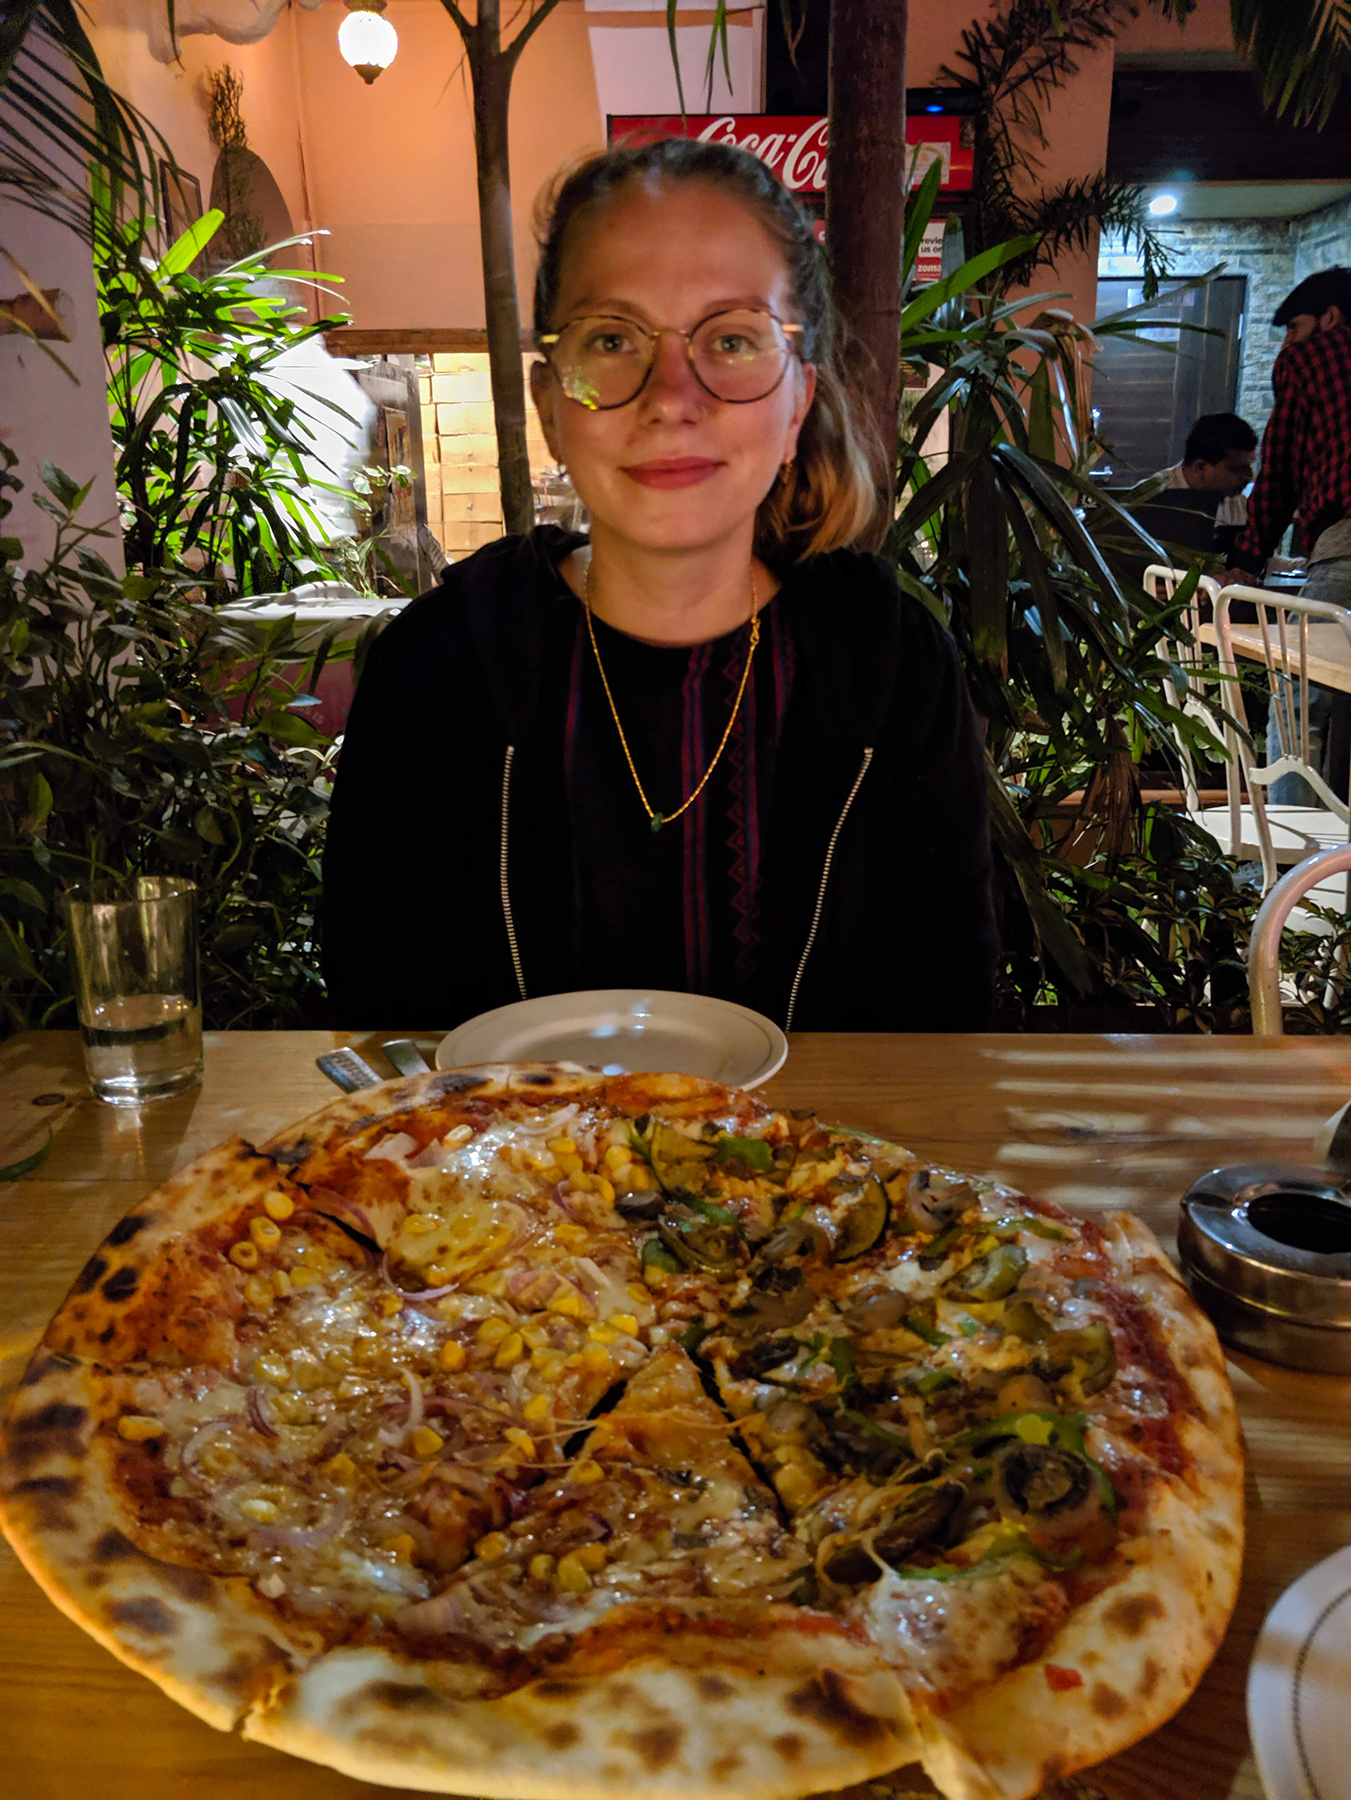 Tourist with her pizza